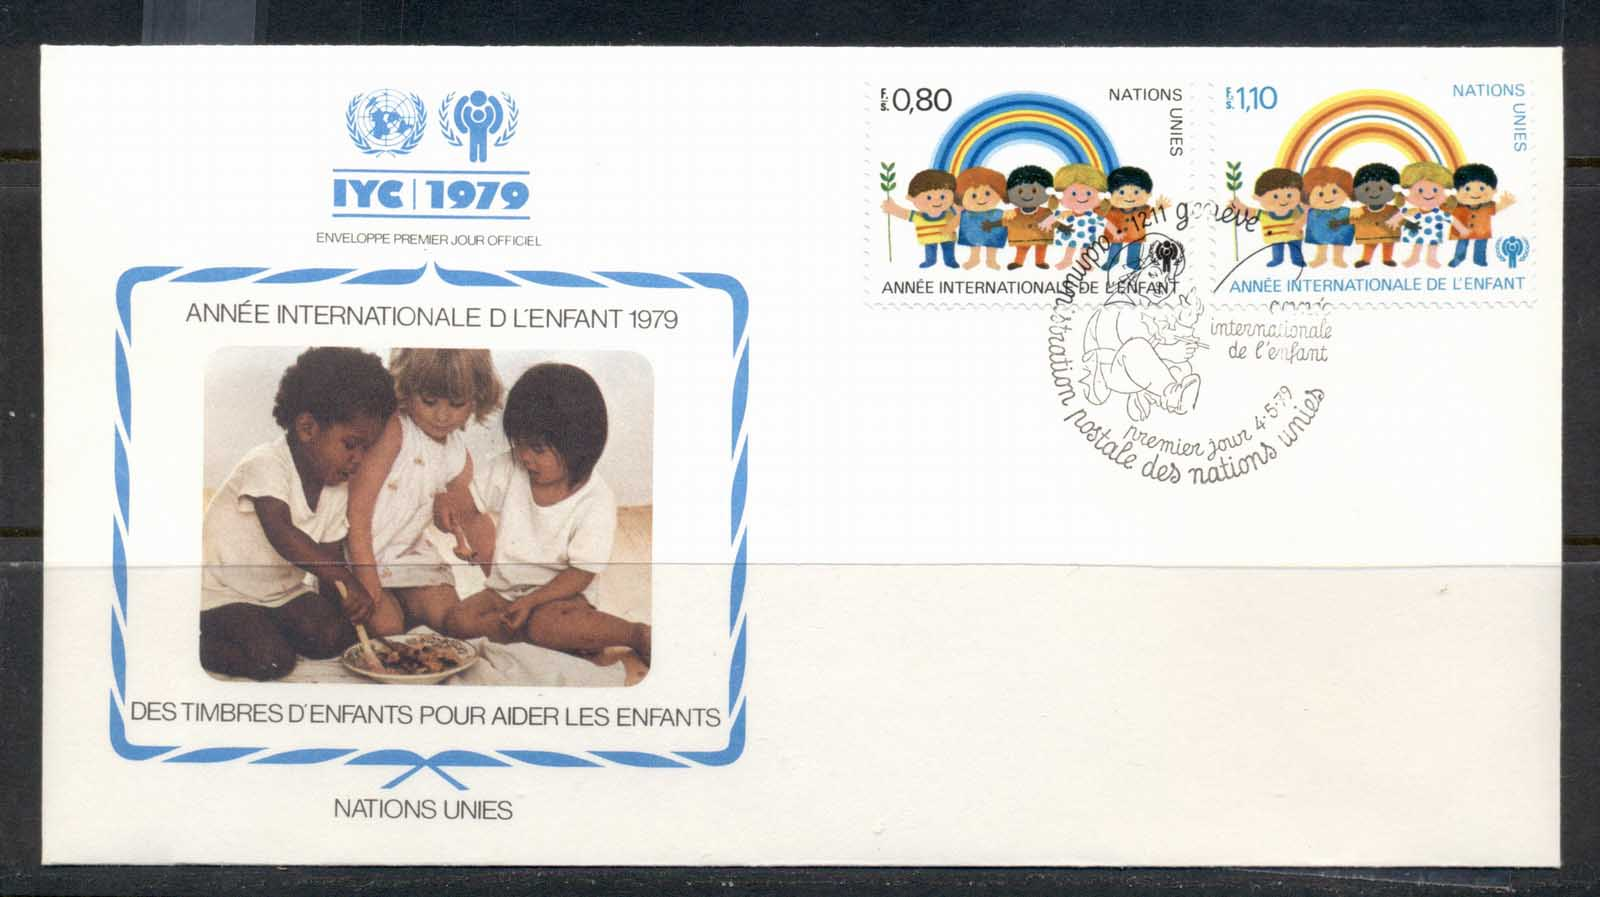 UN Geneva 1979 IYC International year of the Child FDC